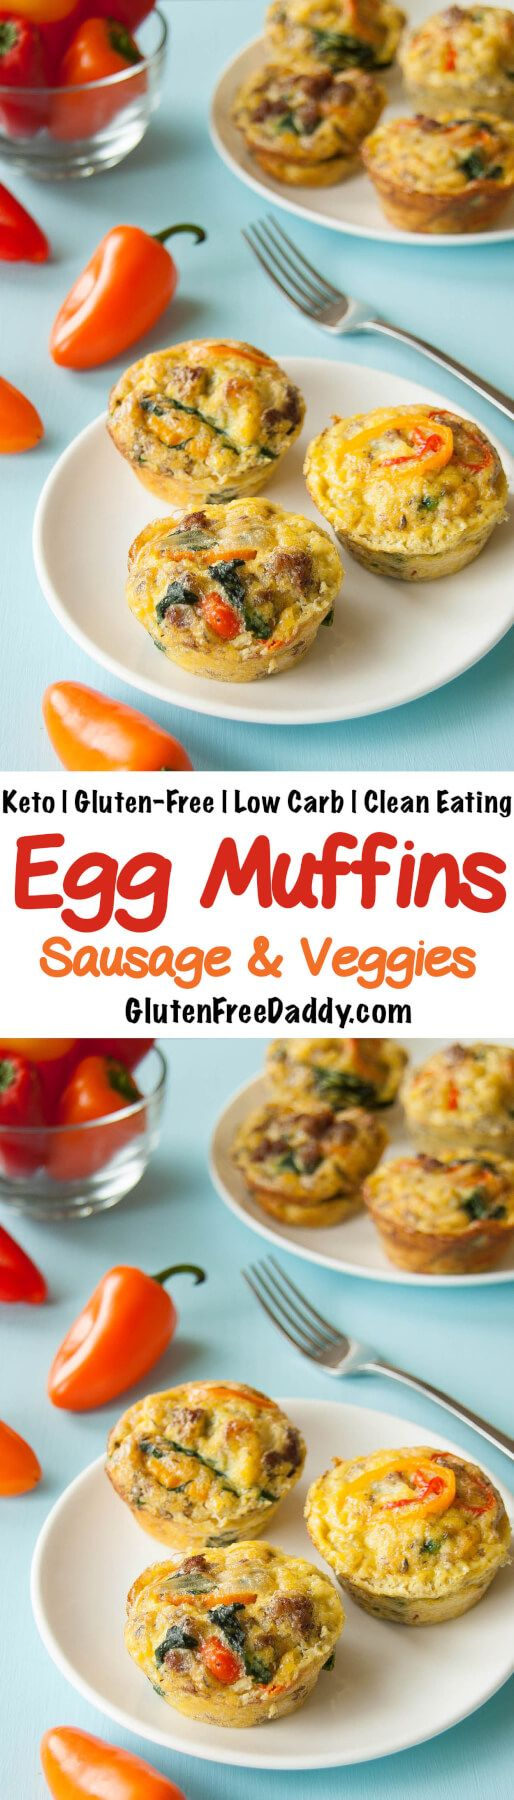 These Keto egg muffins are packed with protein and veggies; they are so easy to make and grab on the go and include everything in one neat little package. {Low Carb, Gluten Free, Clean Eating}